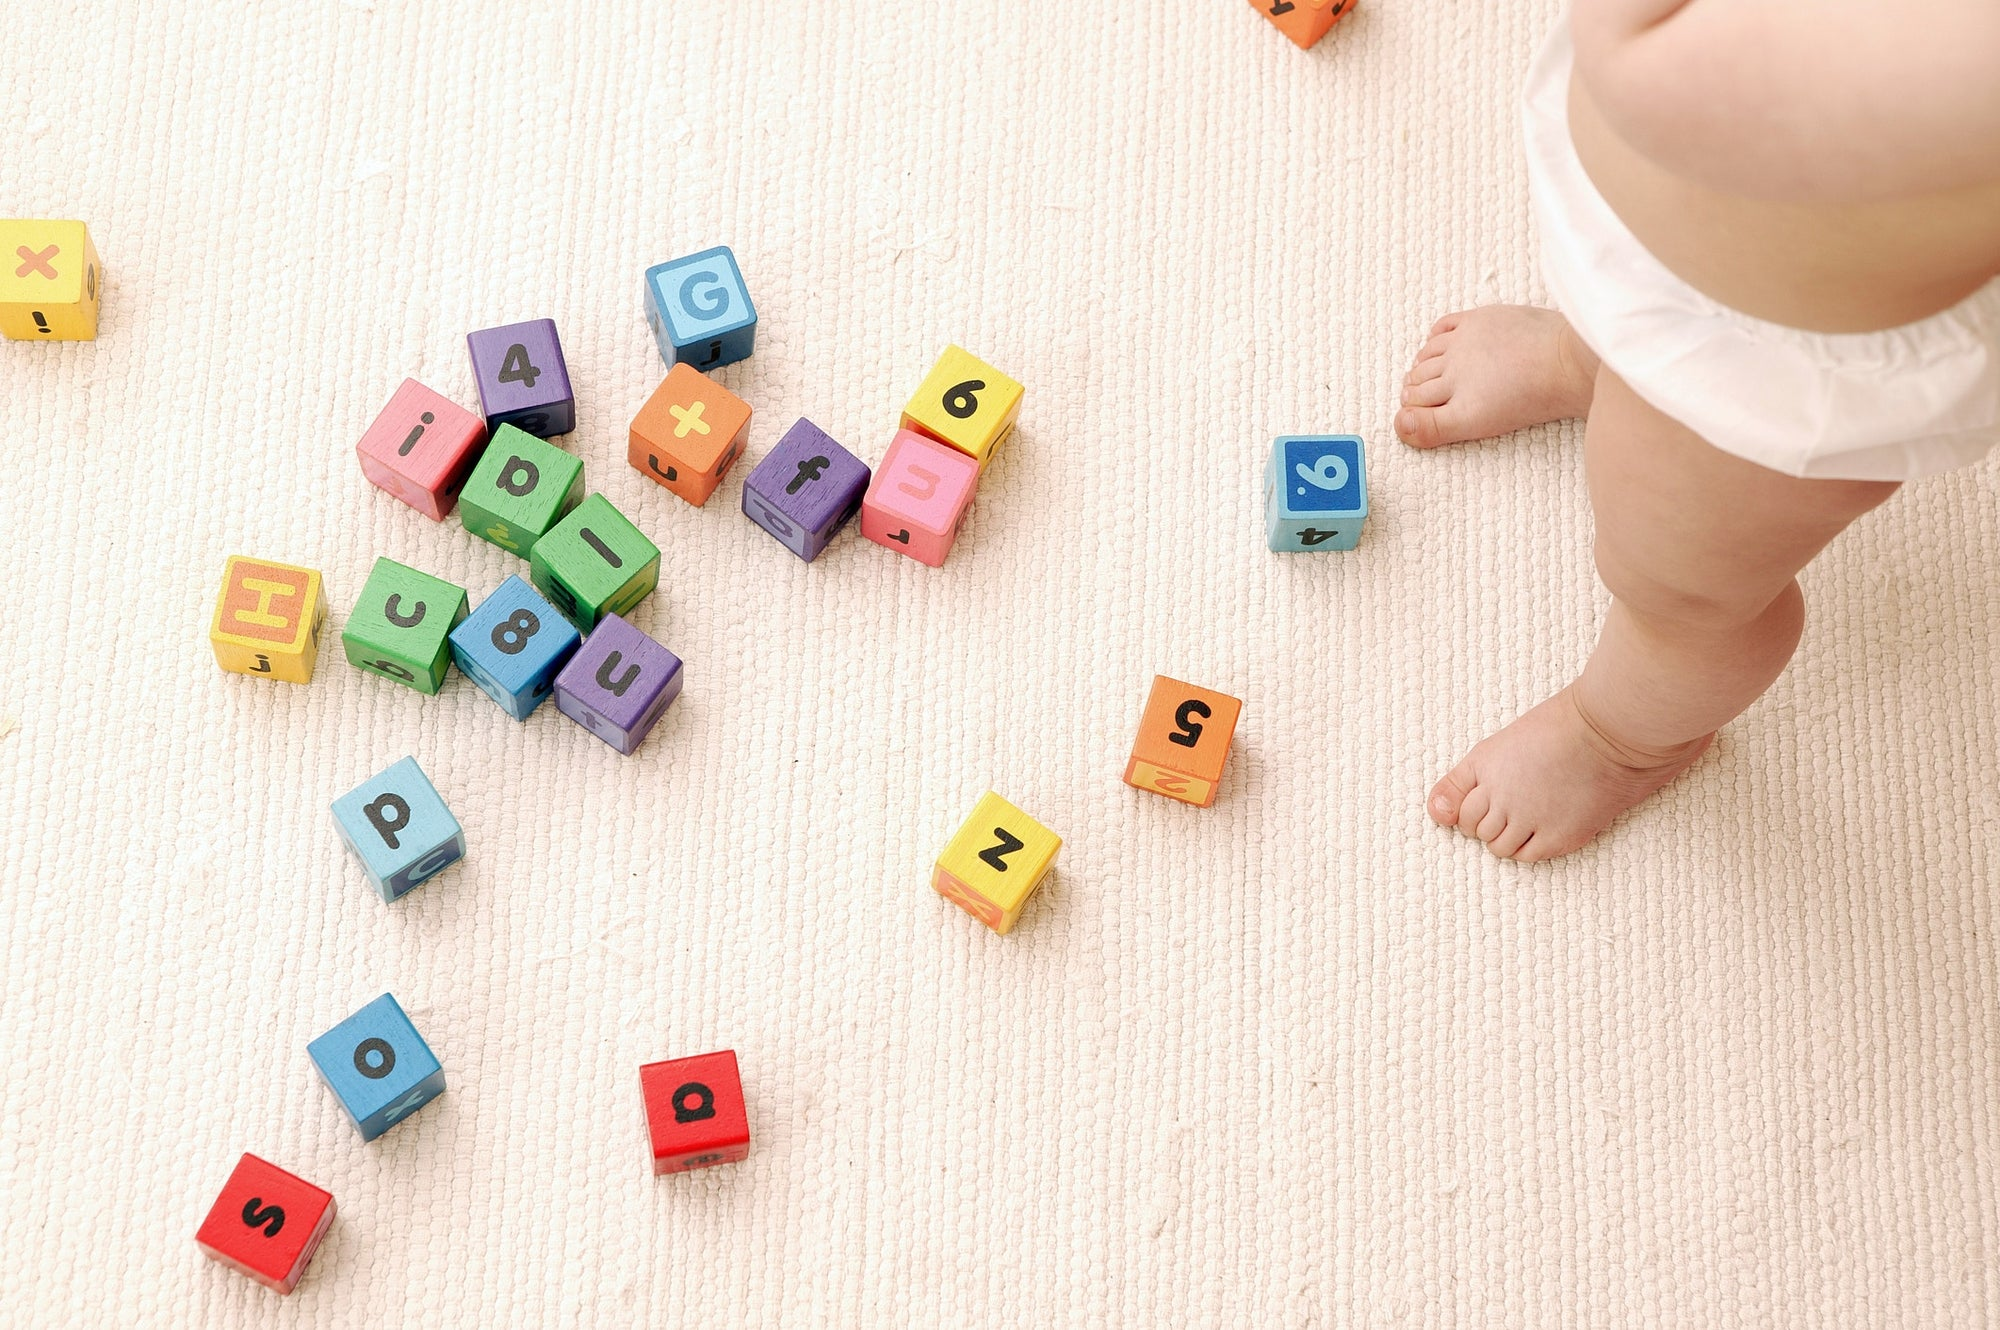 toy cubes with numbers and alphabets